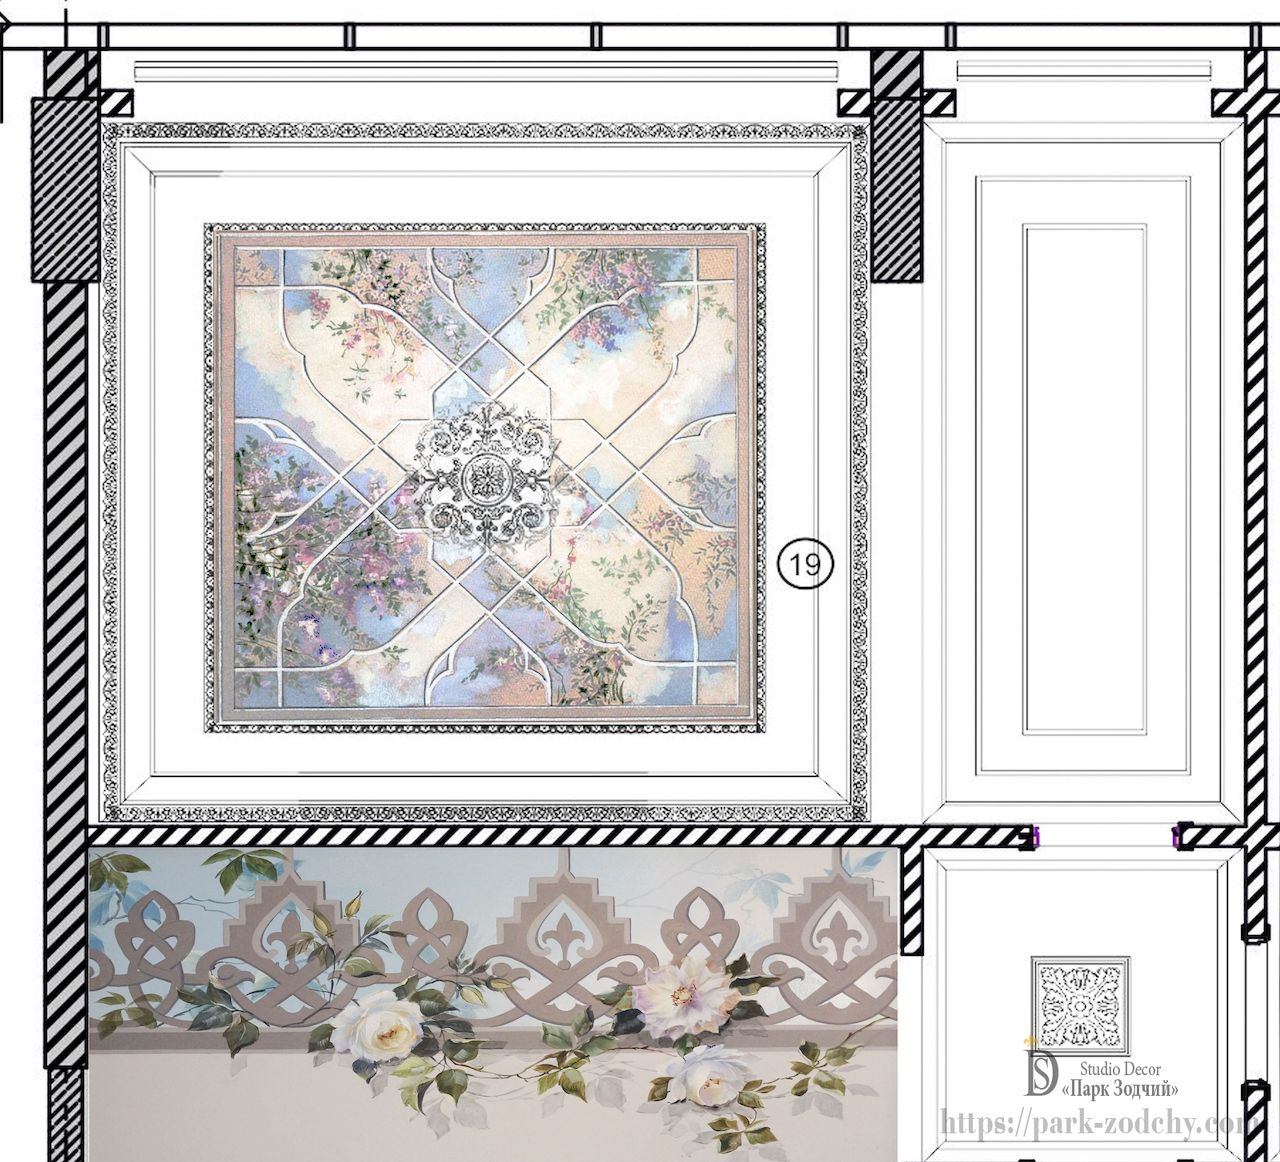 Empire style ceiling painting project